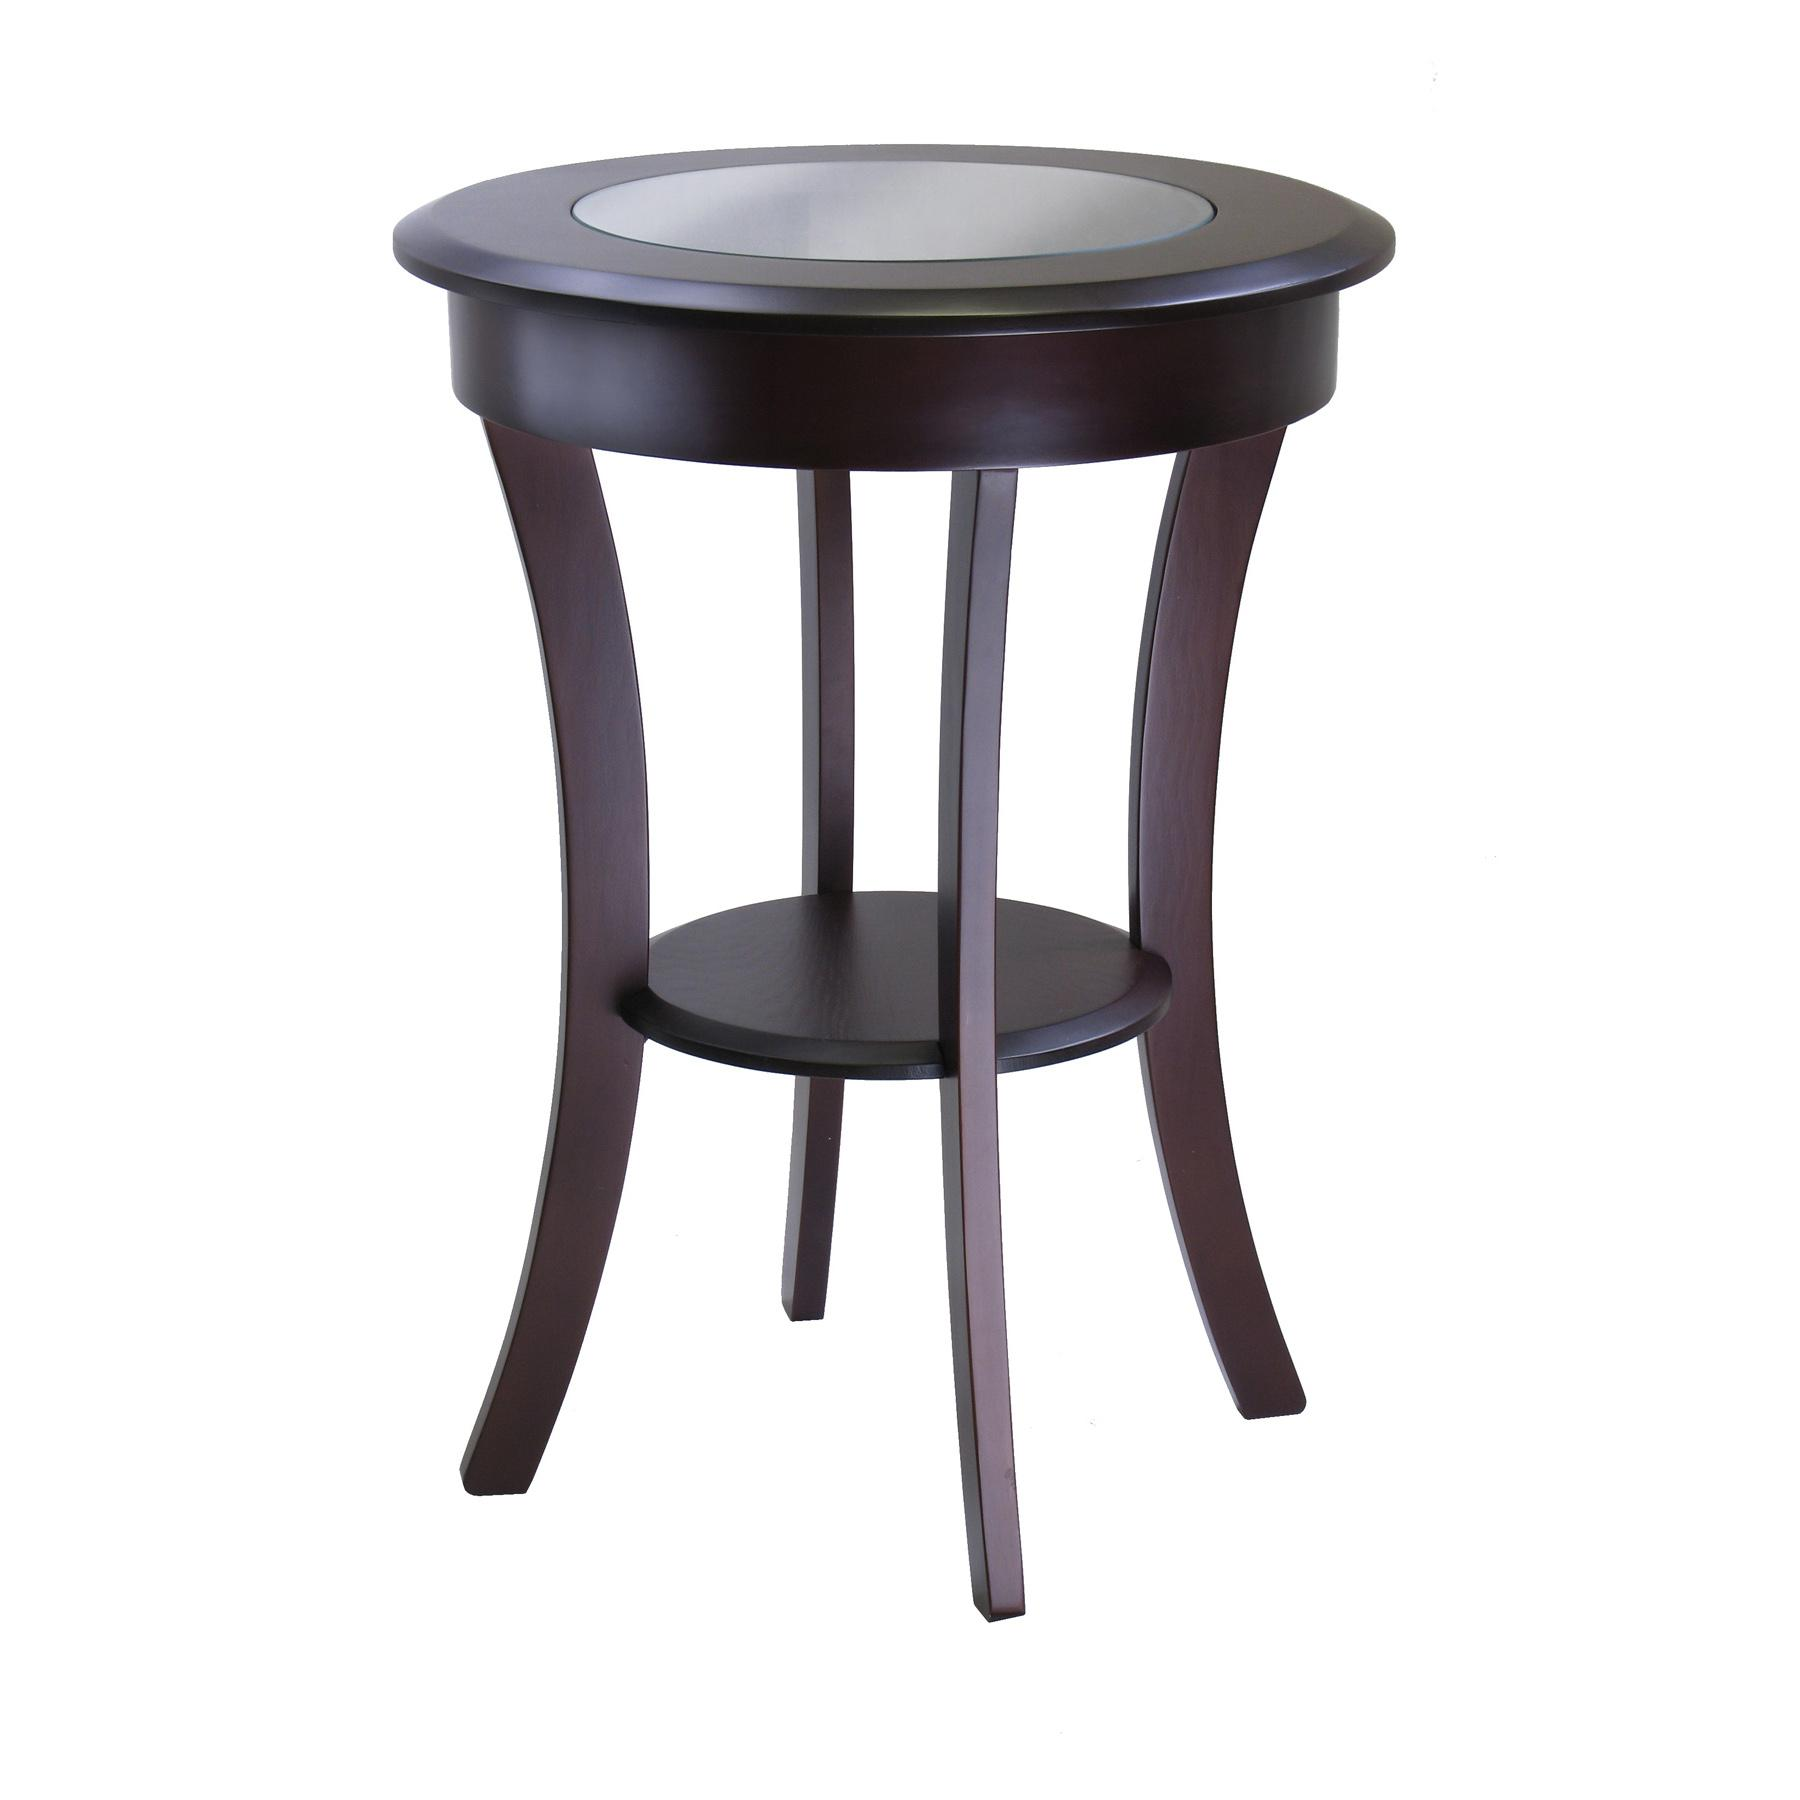 inspiring corner accent tables espresso threshold modern cabinet furniture storage and tall gold outdoor decorative room ott for bench table glass target antique living round